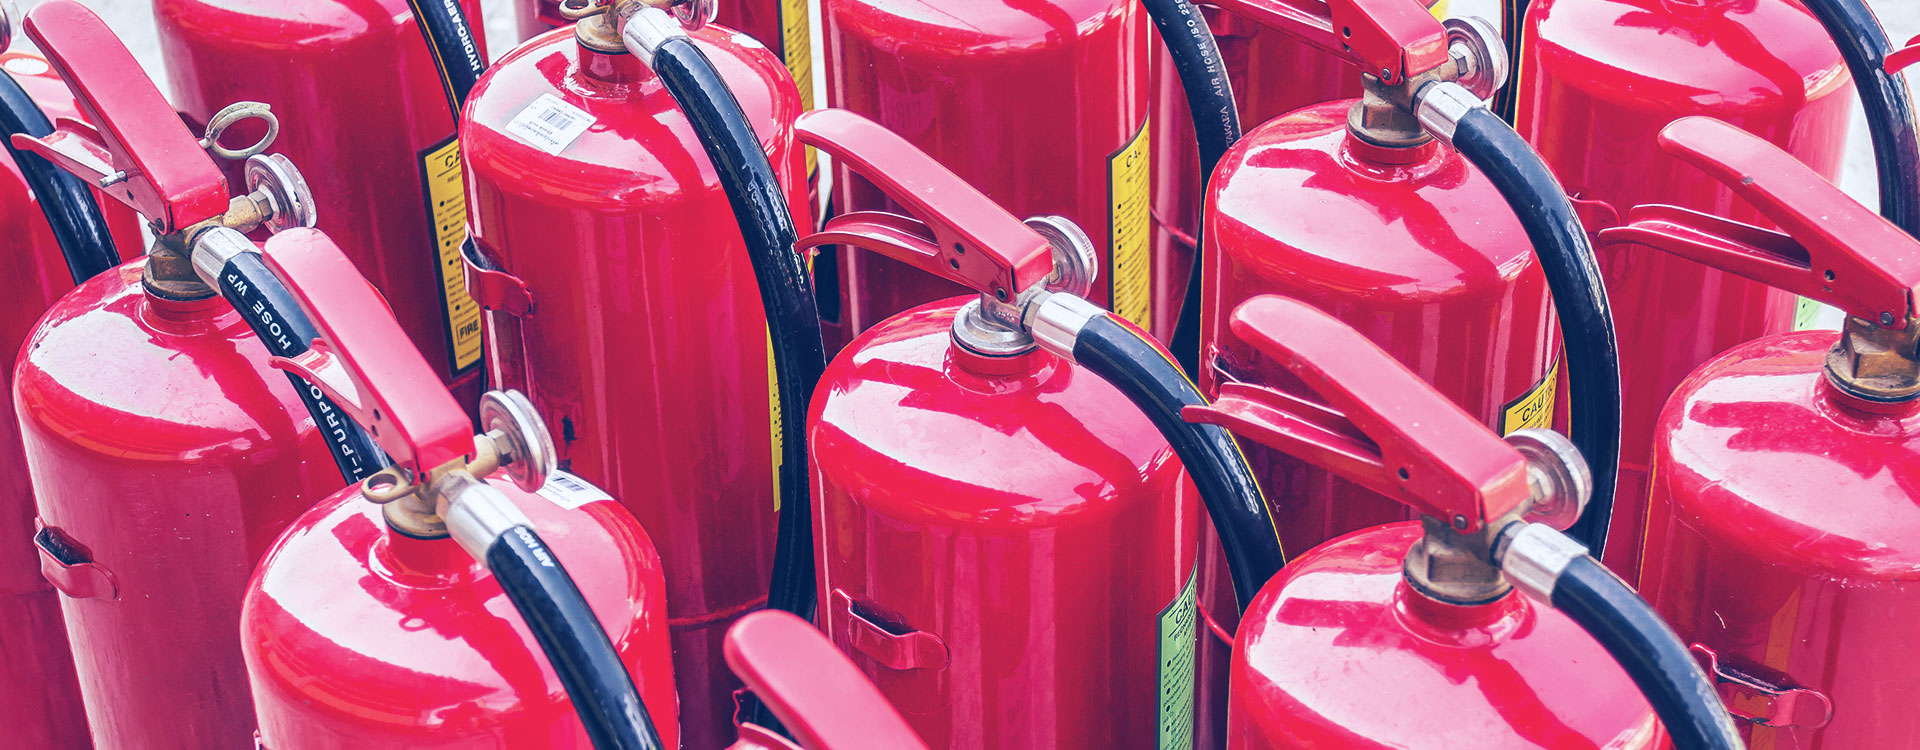 fire-and-safety_header02jpg